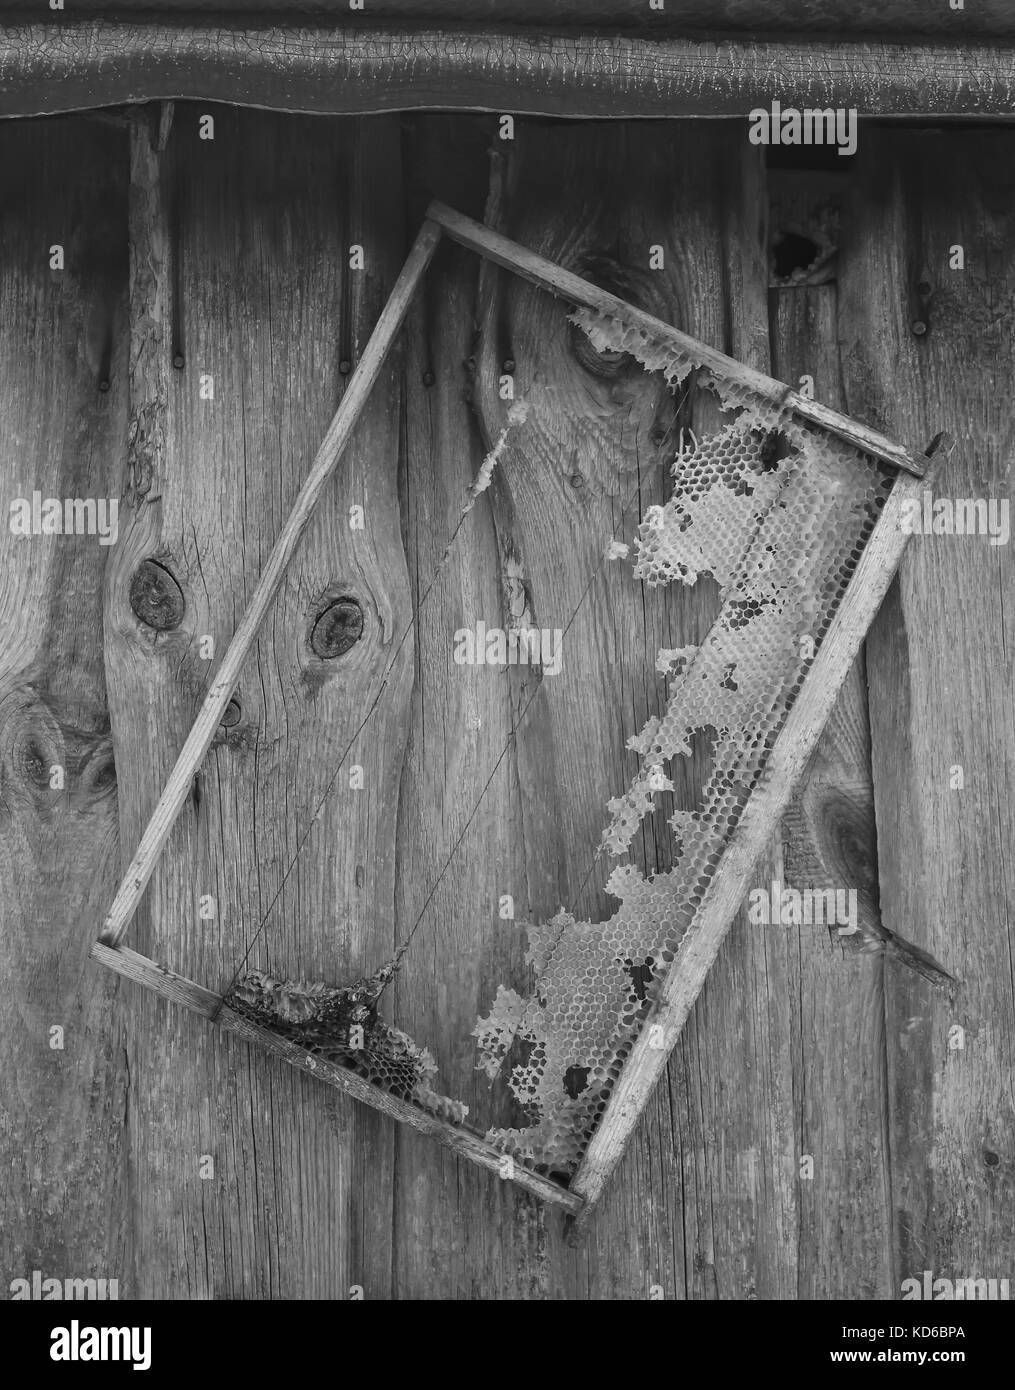 Old honeycomb frame hangs on the wooden barn wall - Stock Image